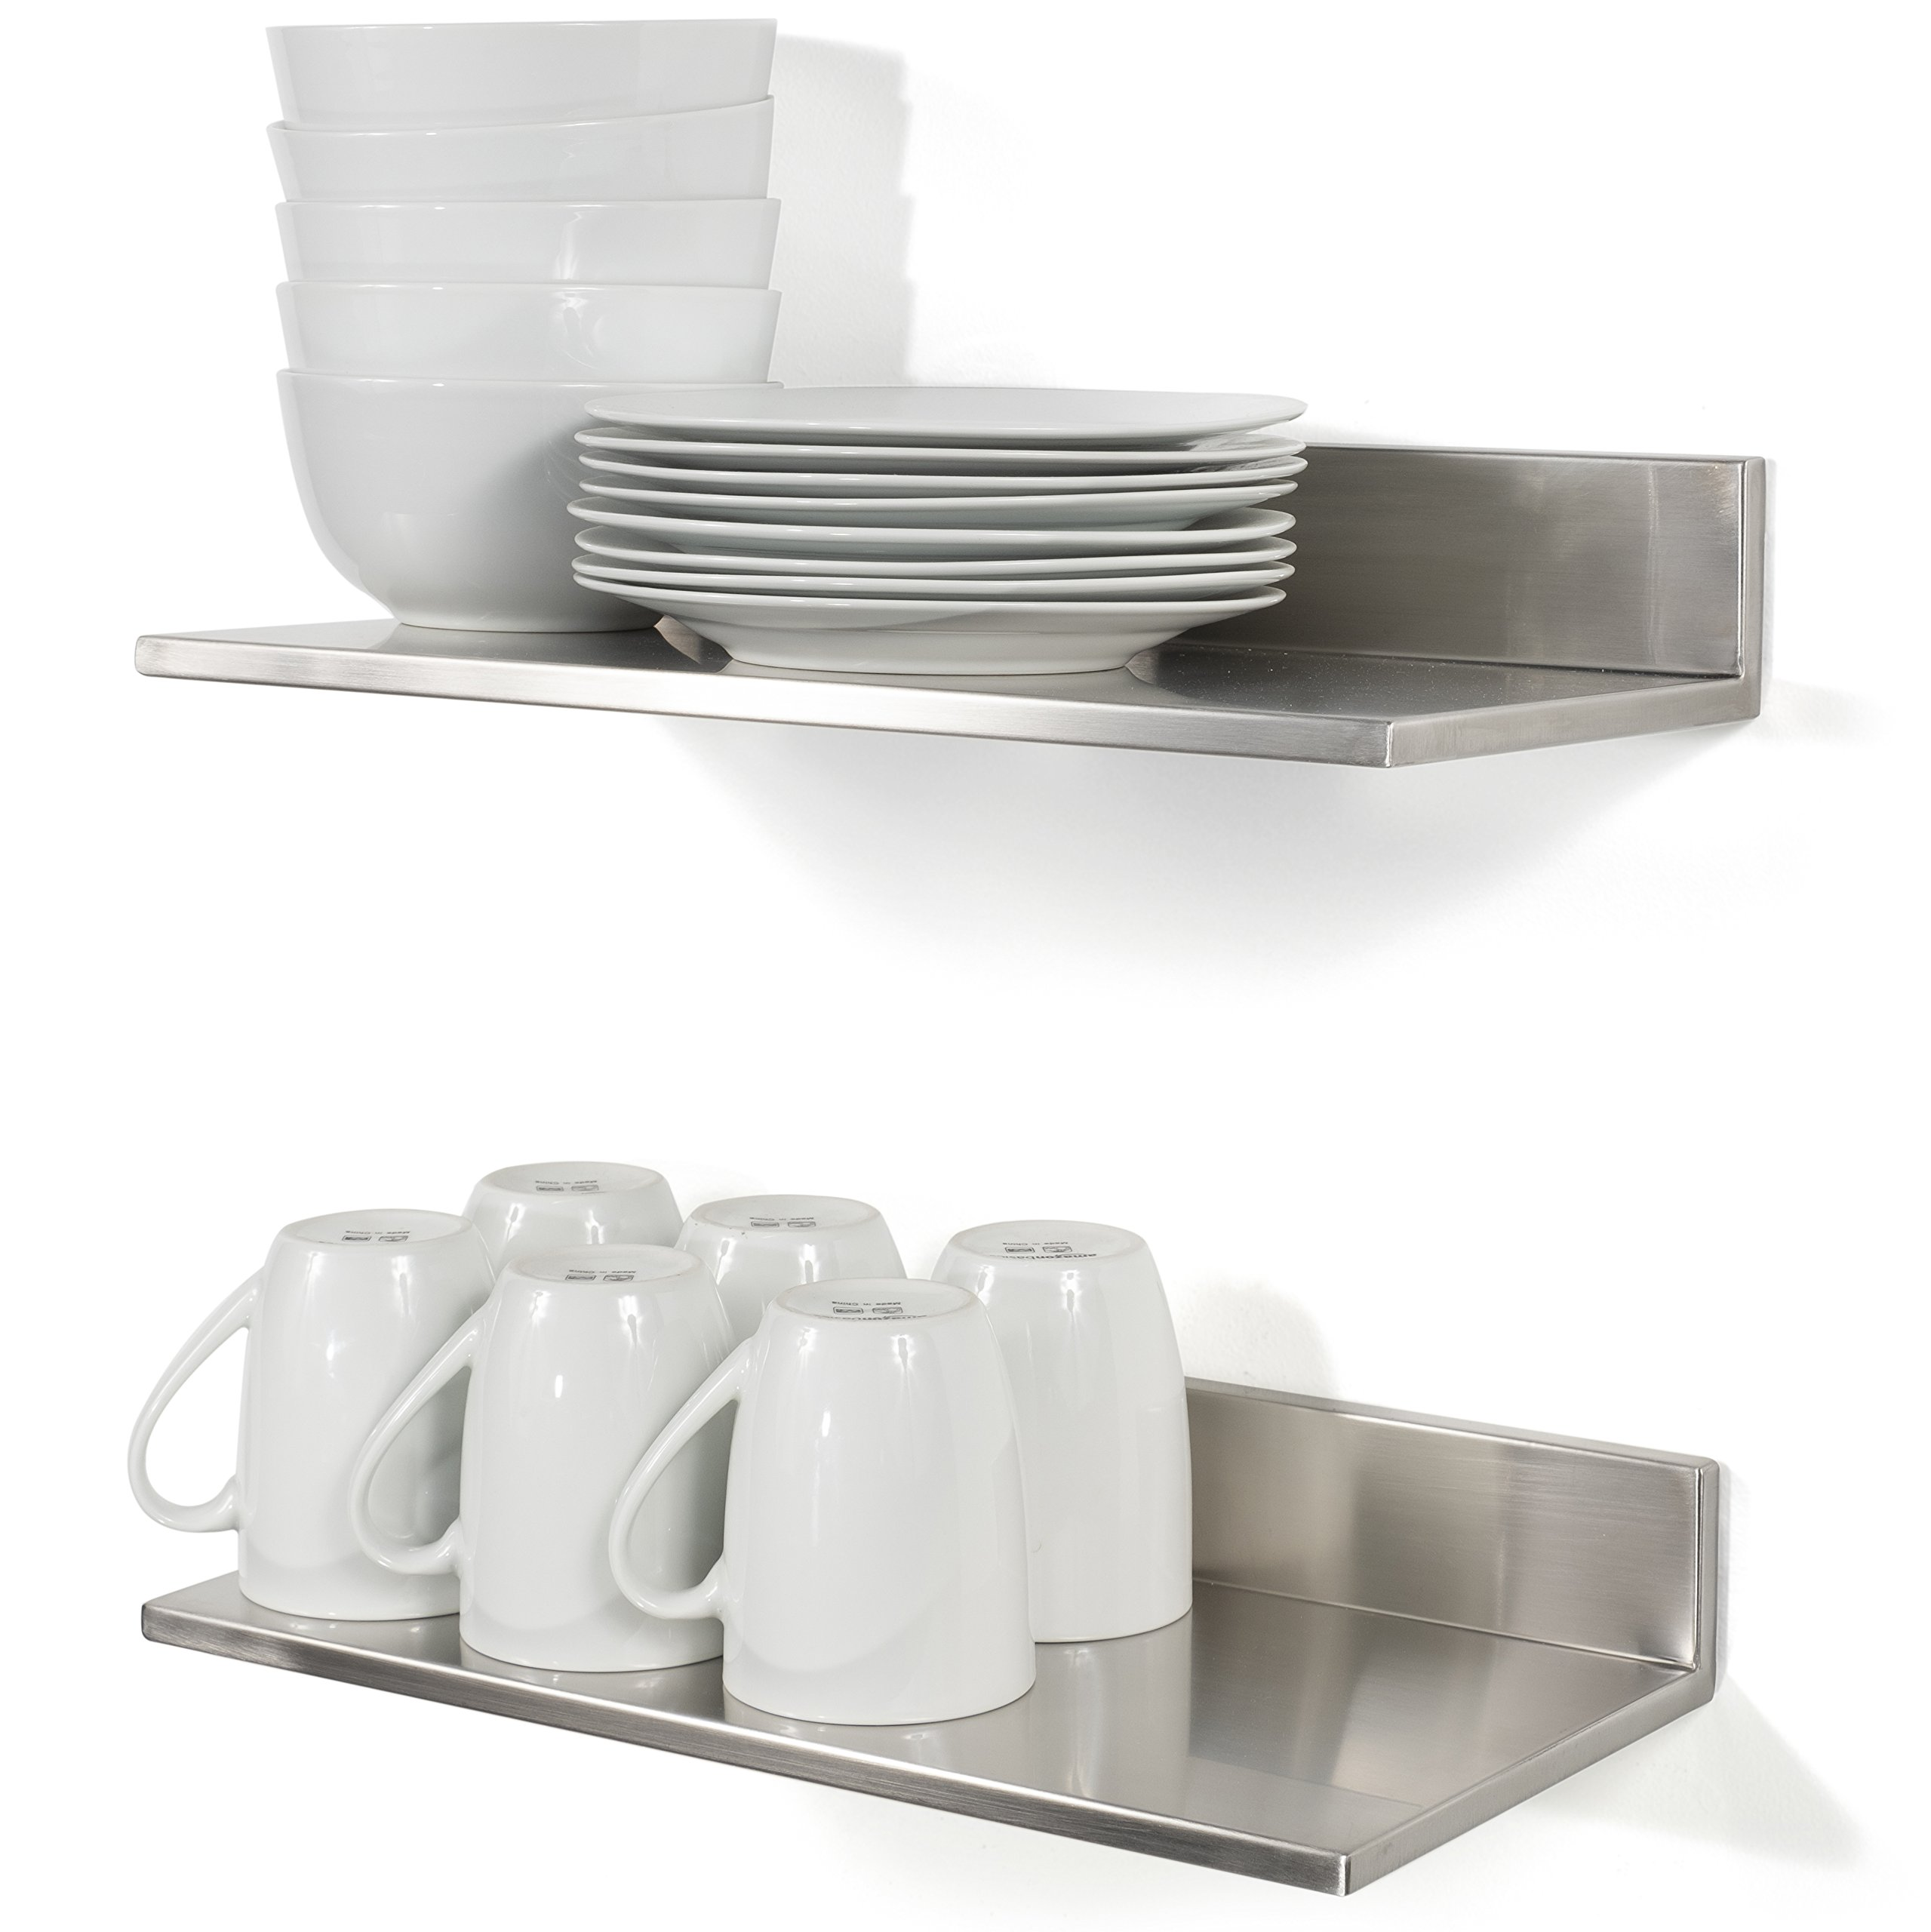 Stainless Steel Wall Mount Commercial and Home Use Premium Quality 15 3/4 Inches Kitchen Floating Shelves Set of 2 Silver by Fasthomegoods